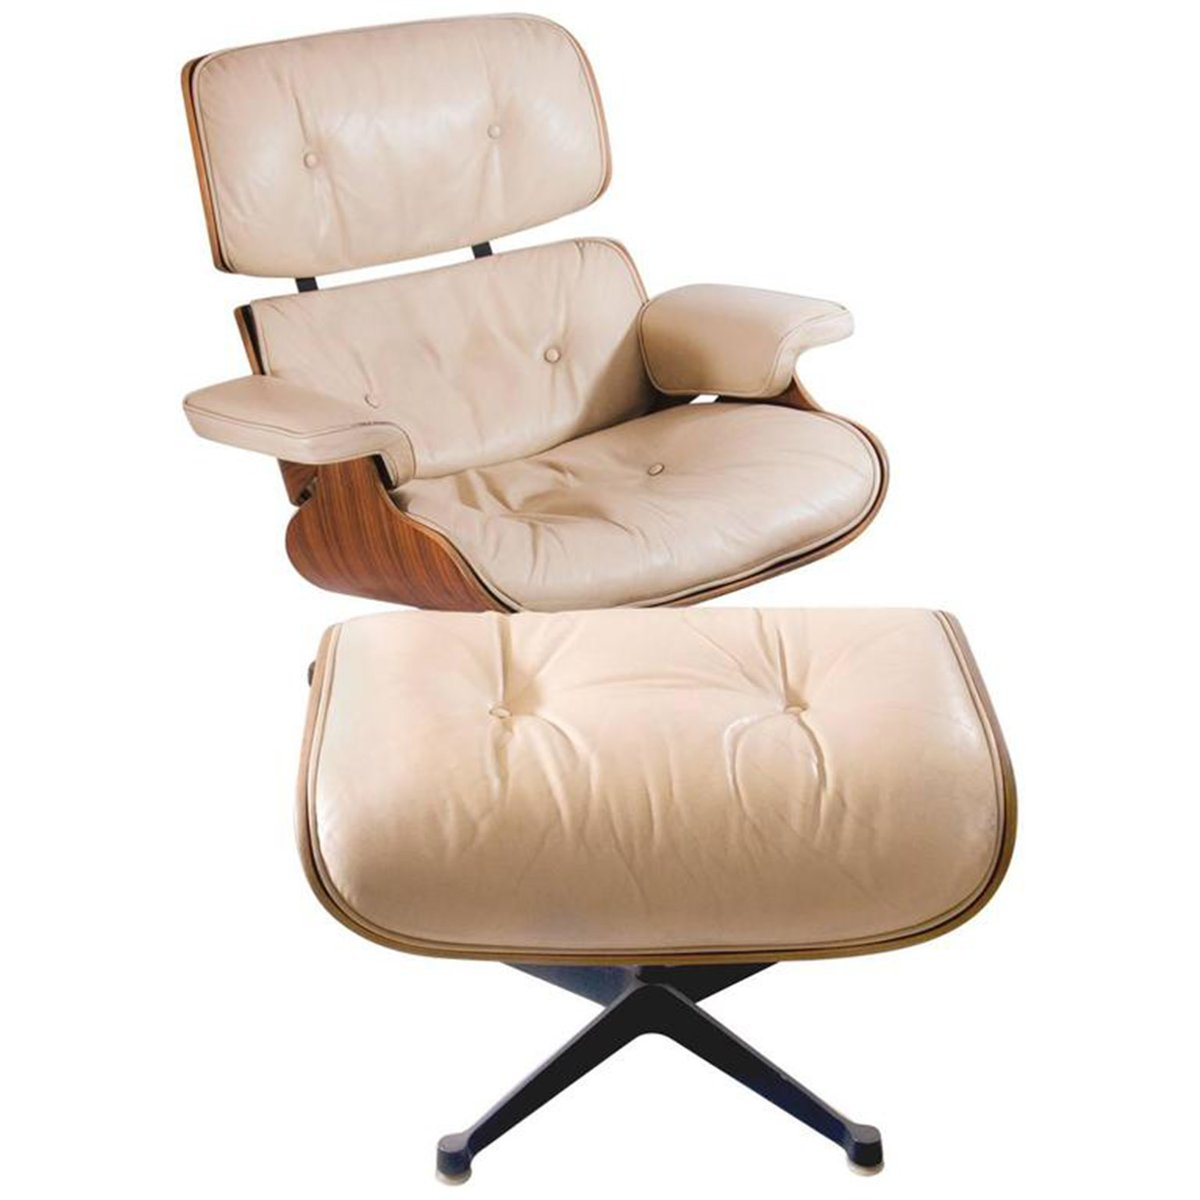 Charles & Ray Eames Sessel Lounge Sessel Mit Hocker Von Charles Ray Eames Für Mobilier International 1960er